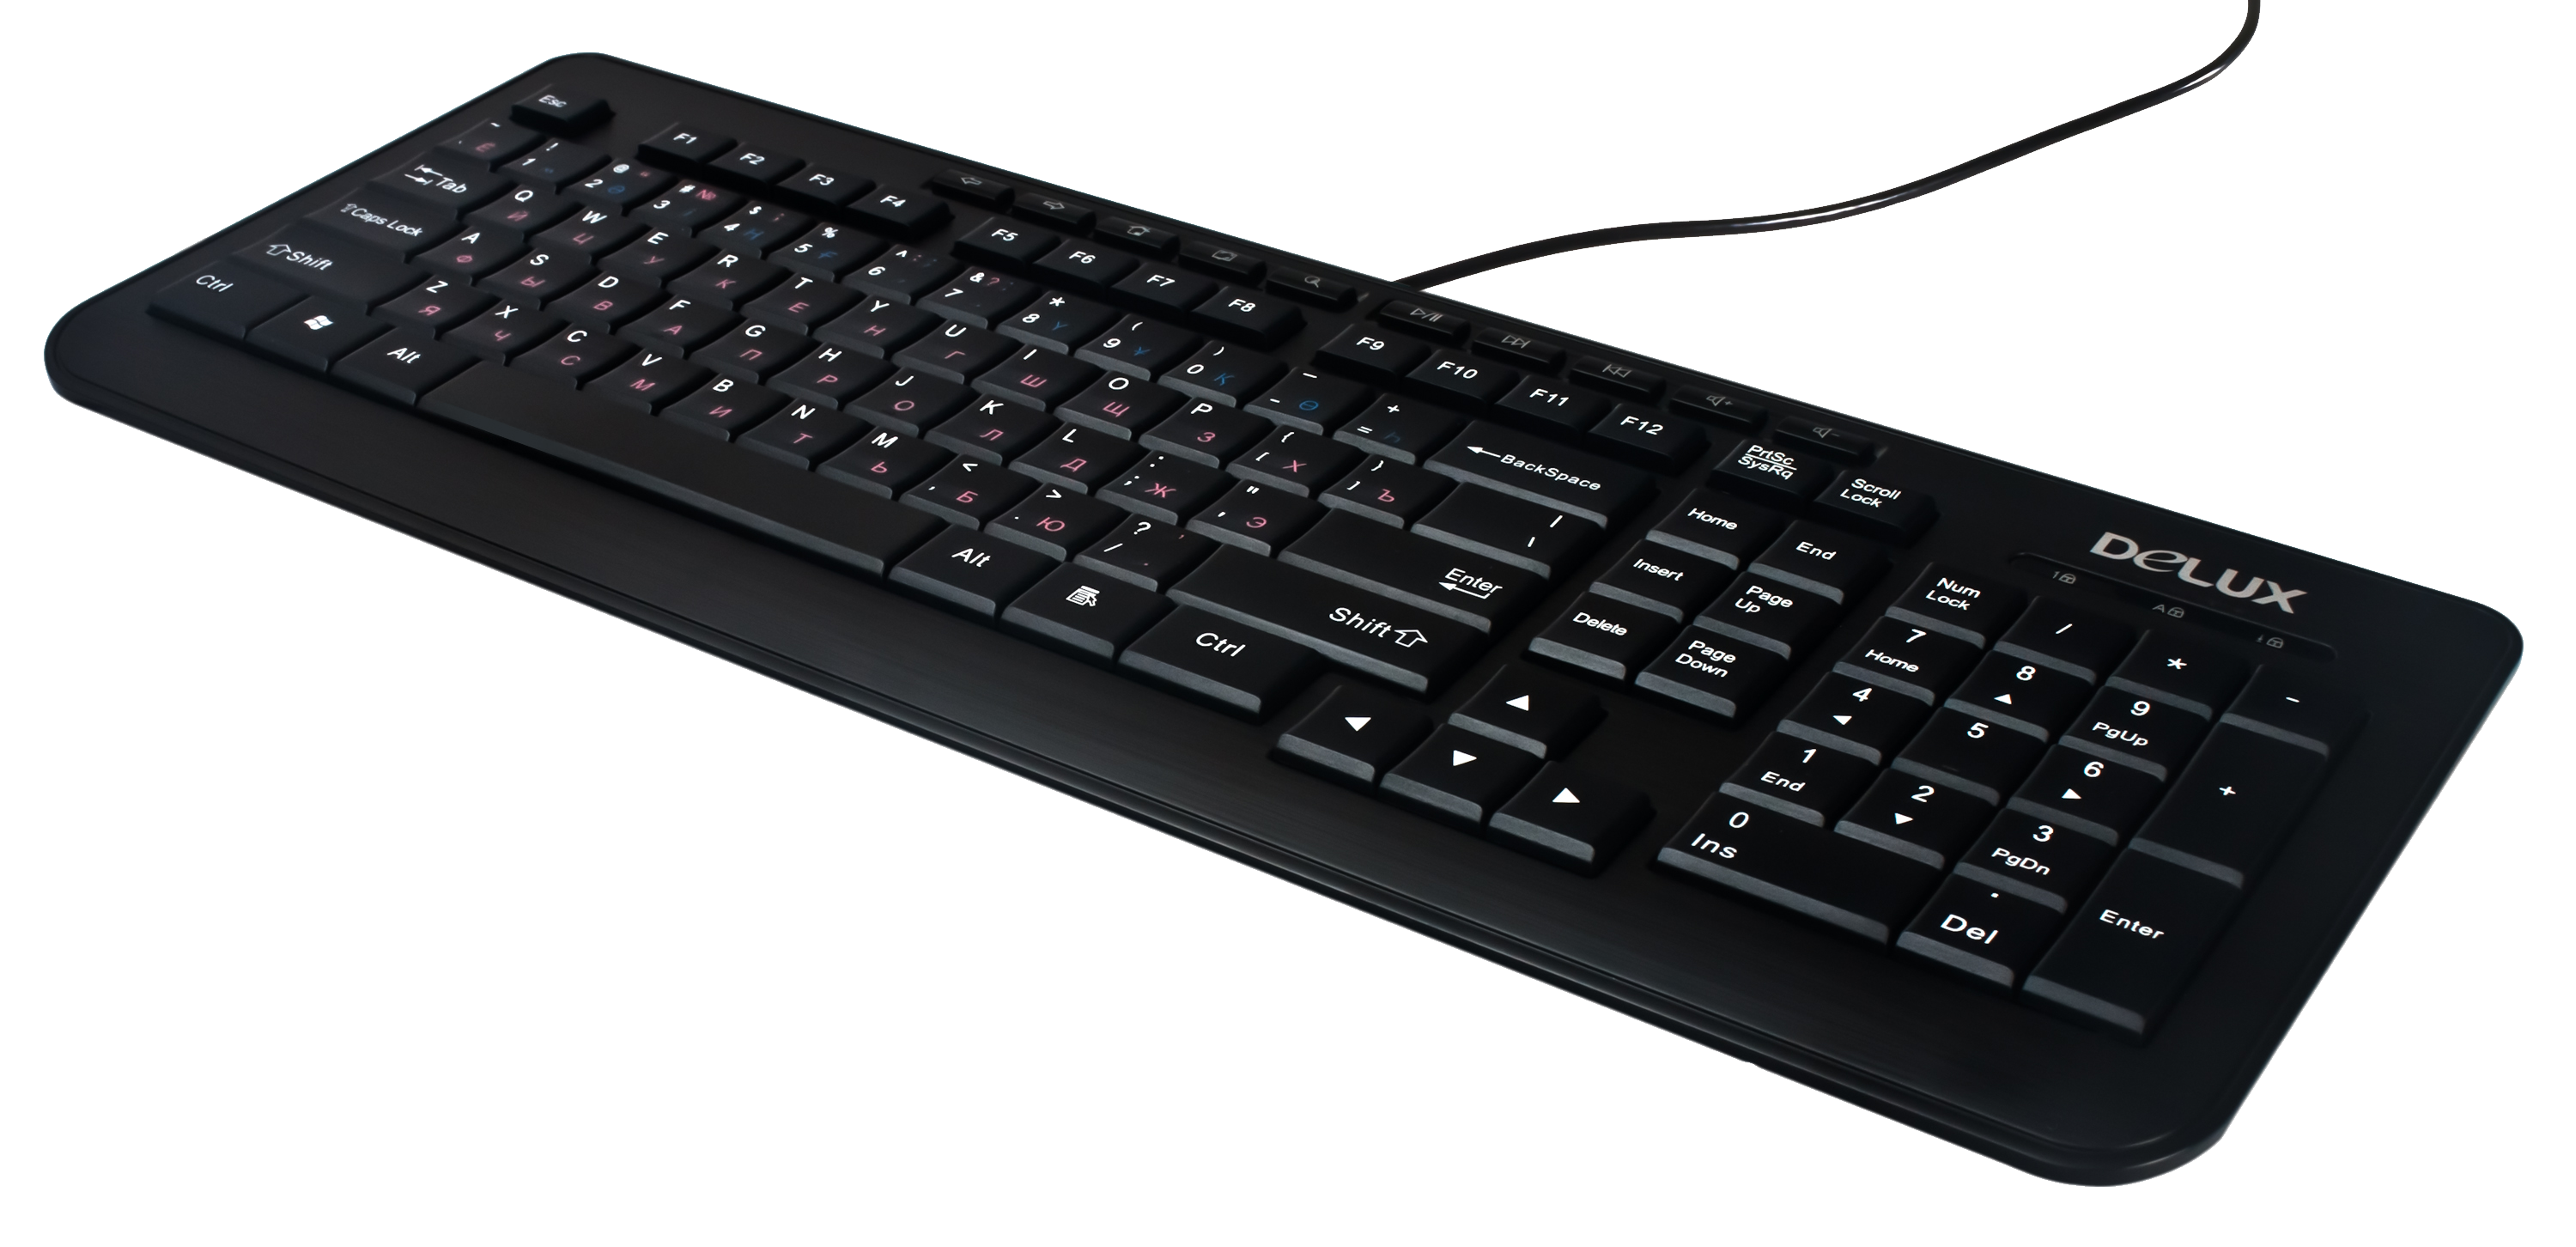 Pc keyboard png. Images free download computer